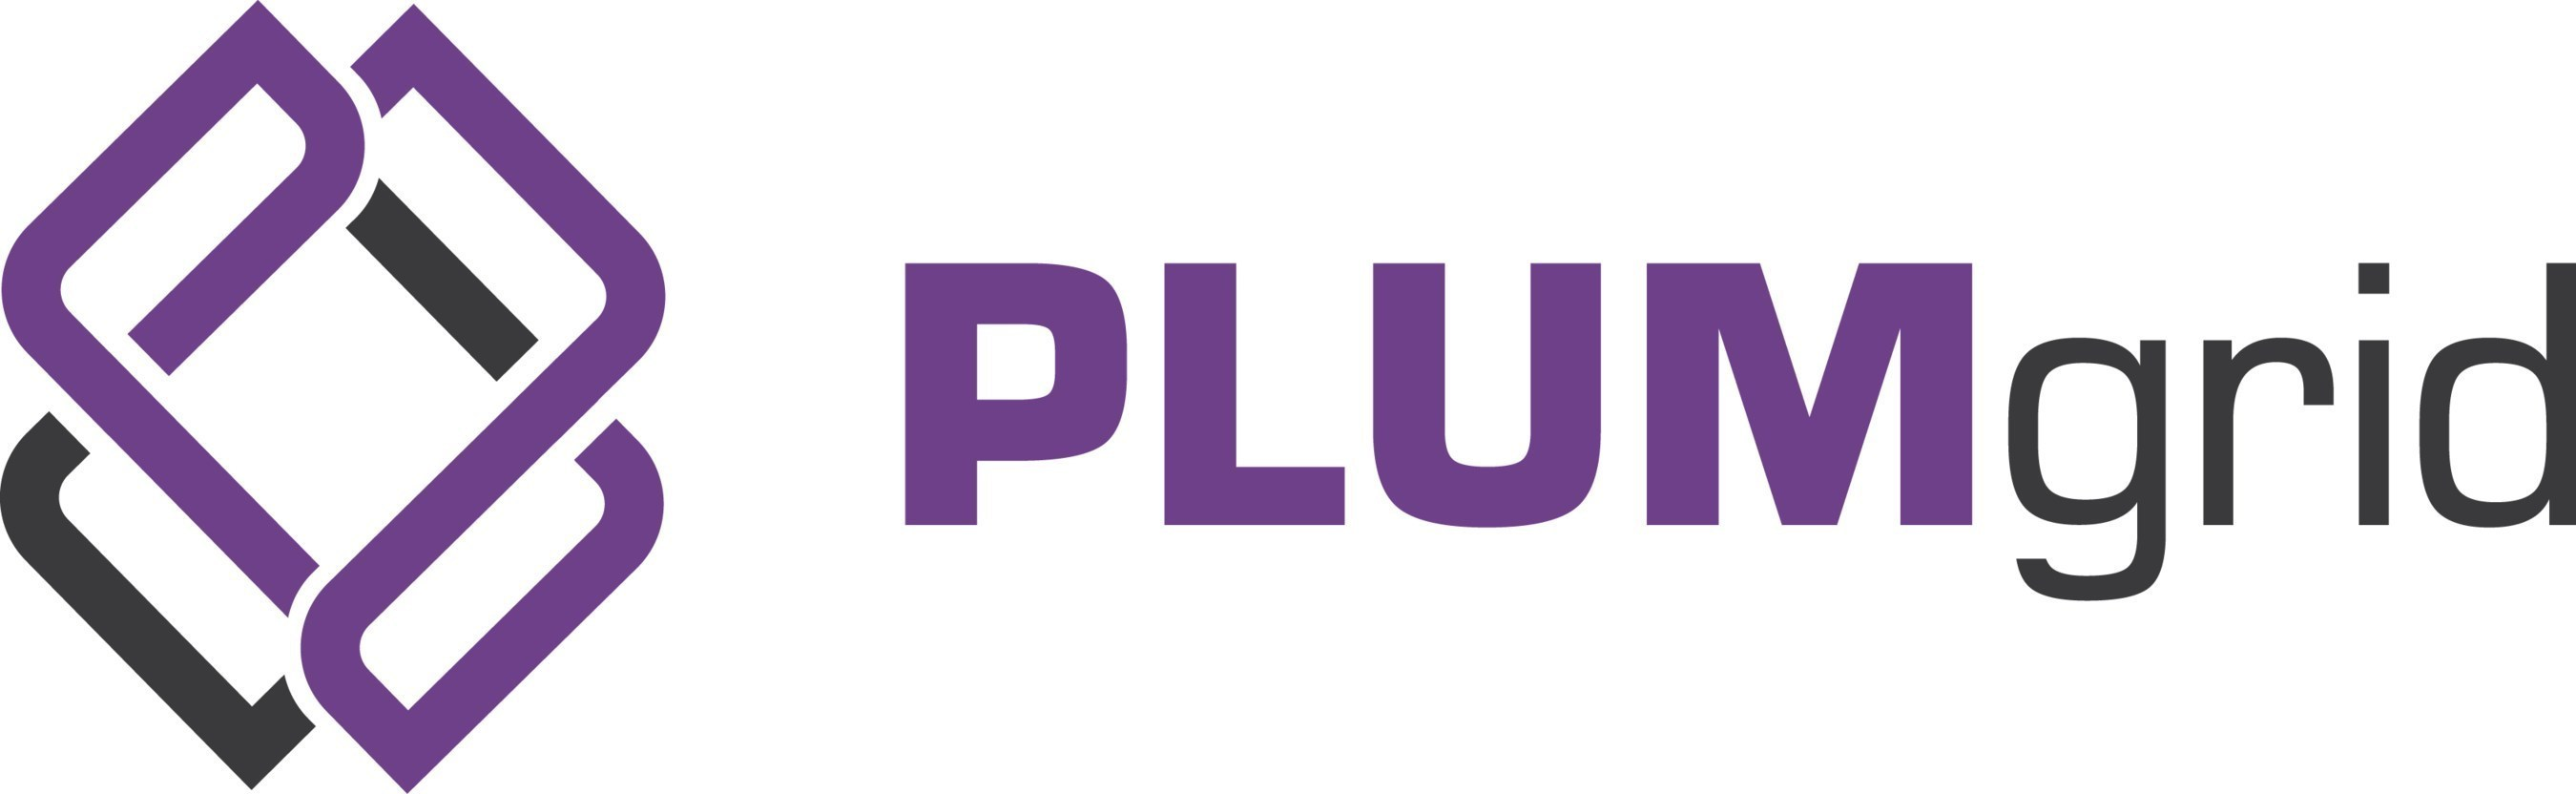 PLUMgrid is a leading innovator of virtual network infrastructure for OpenStack clouds.